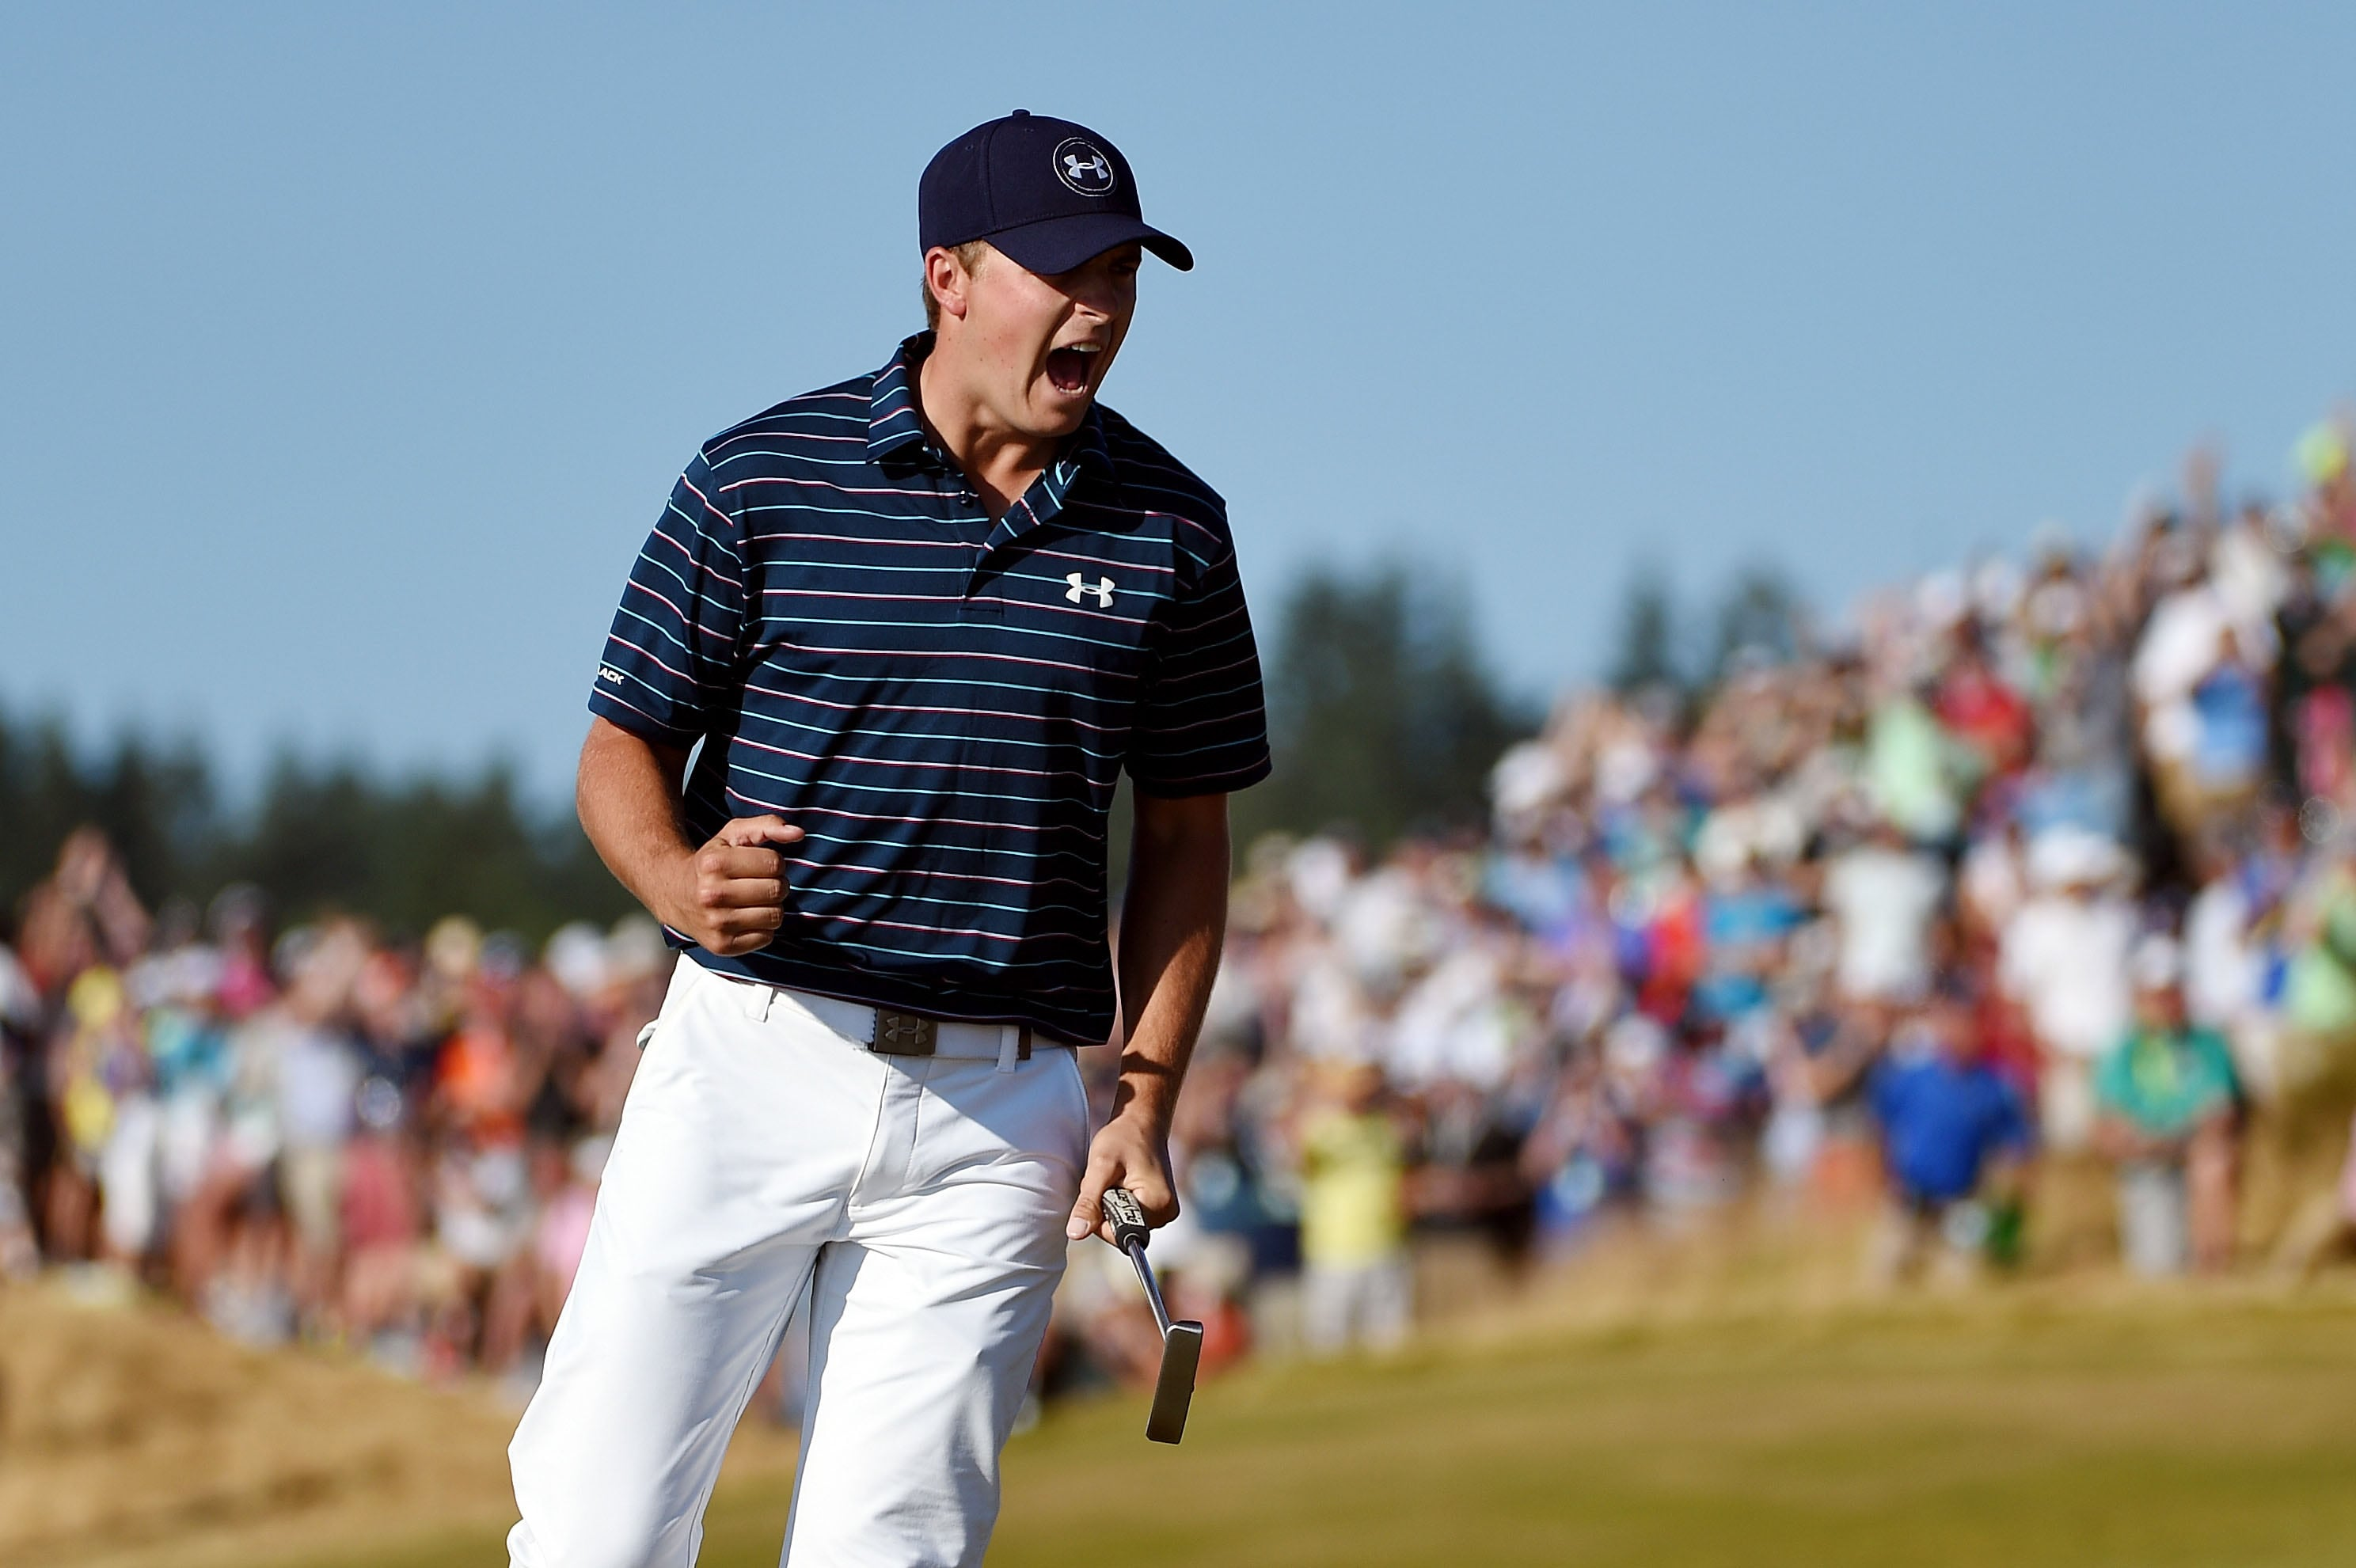 5. Makes crucial putt at 16th hole in U.S. Open